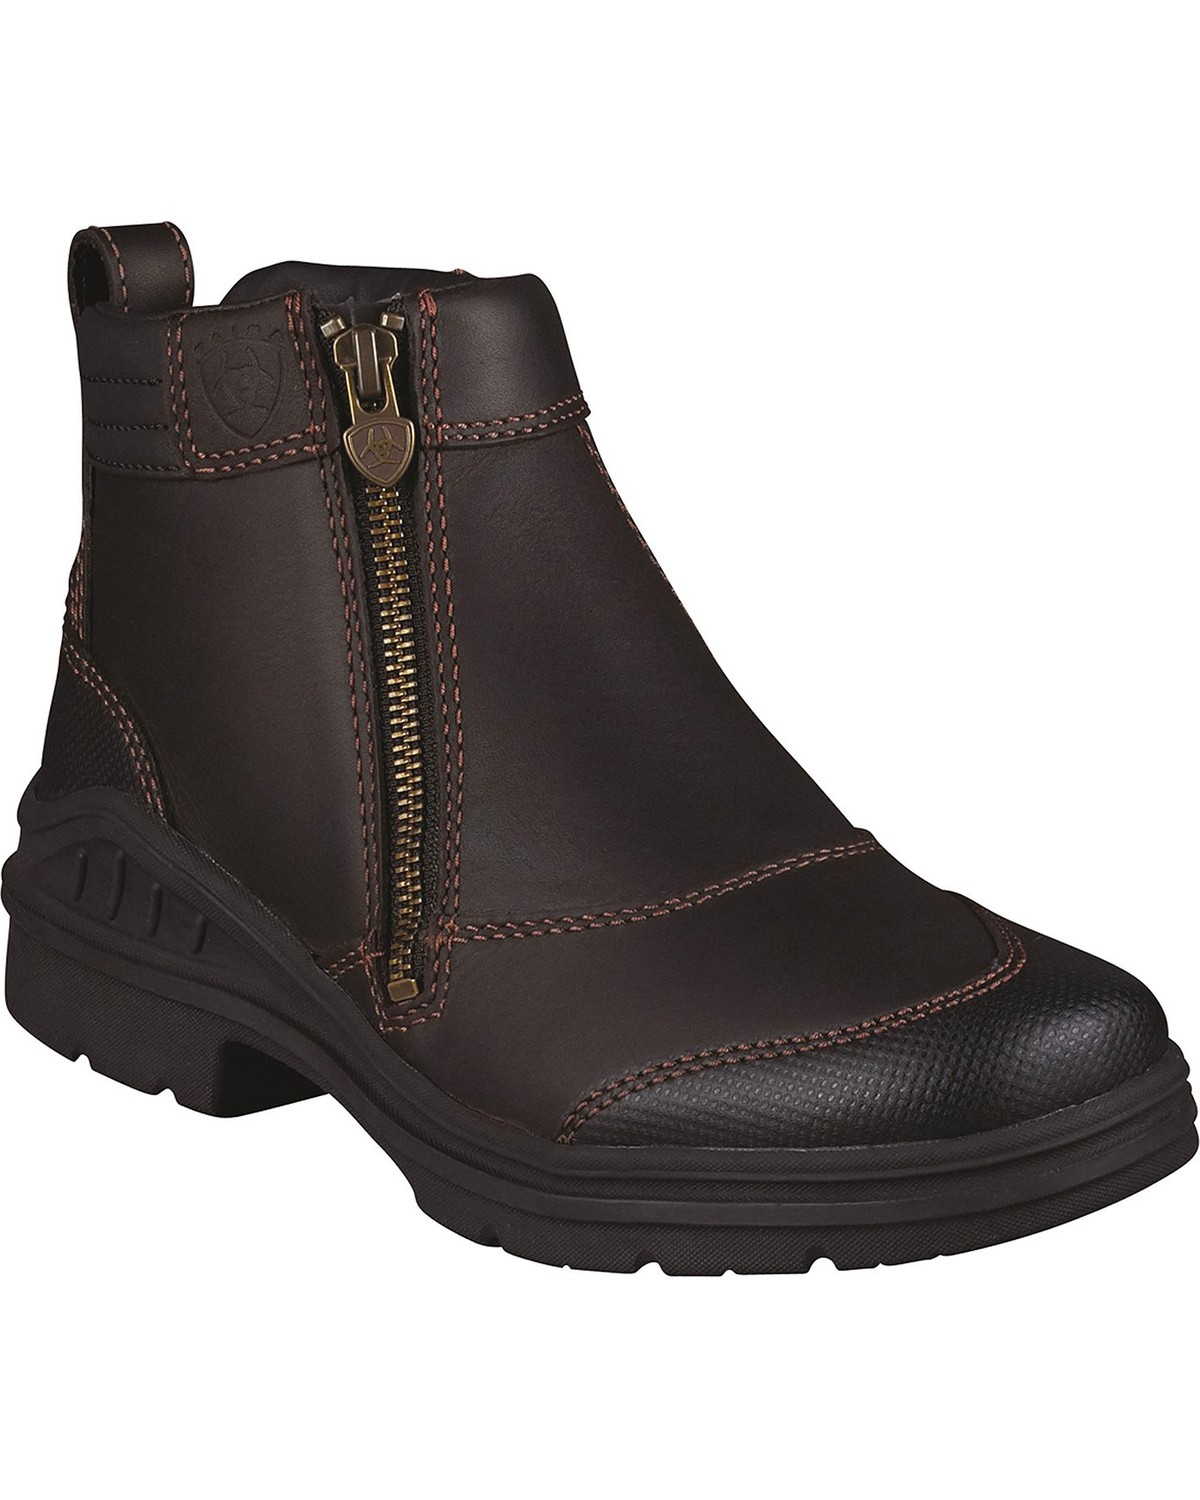 Womens Work Boots - Sheplers